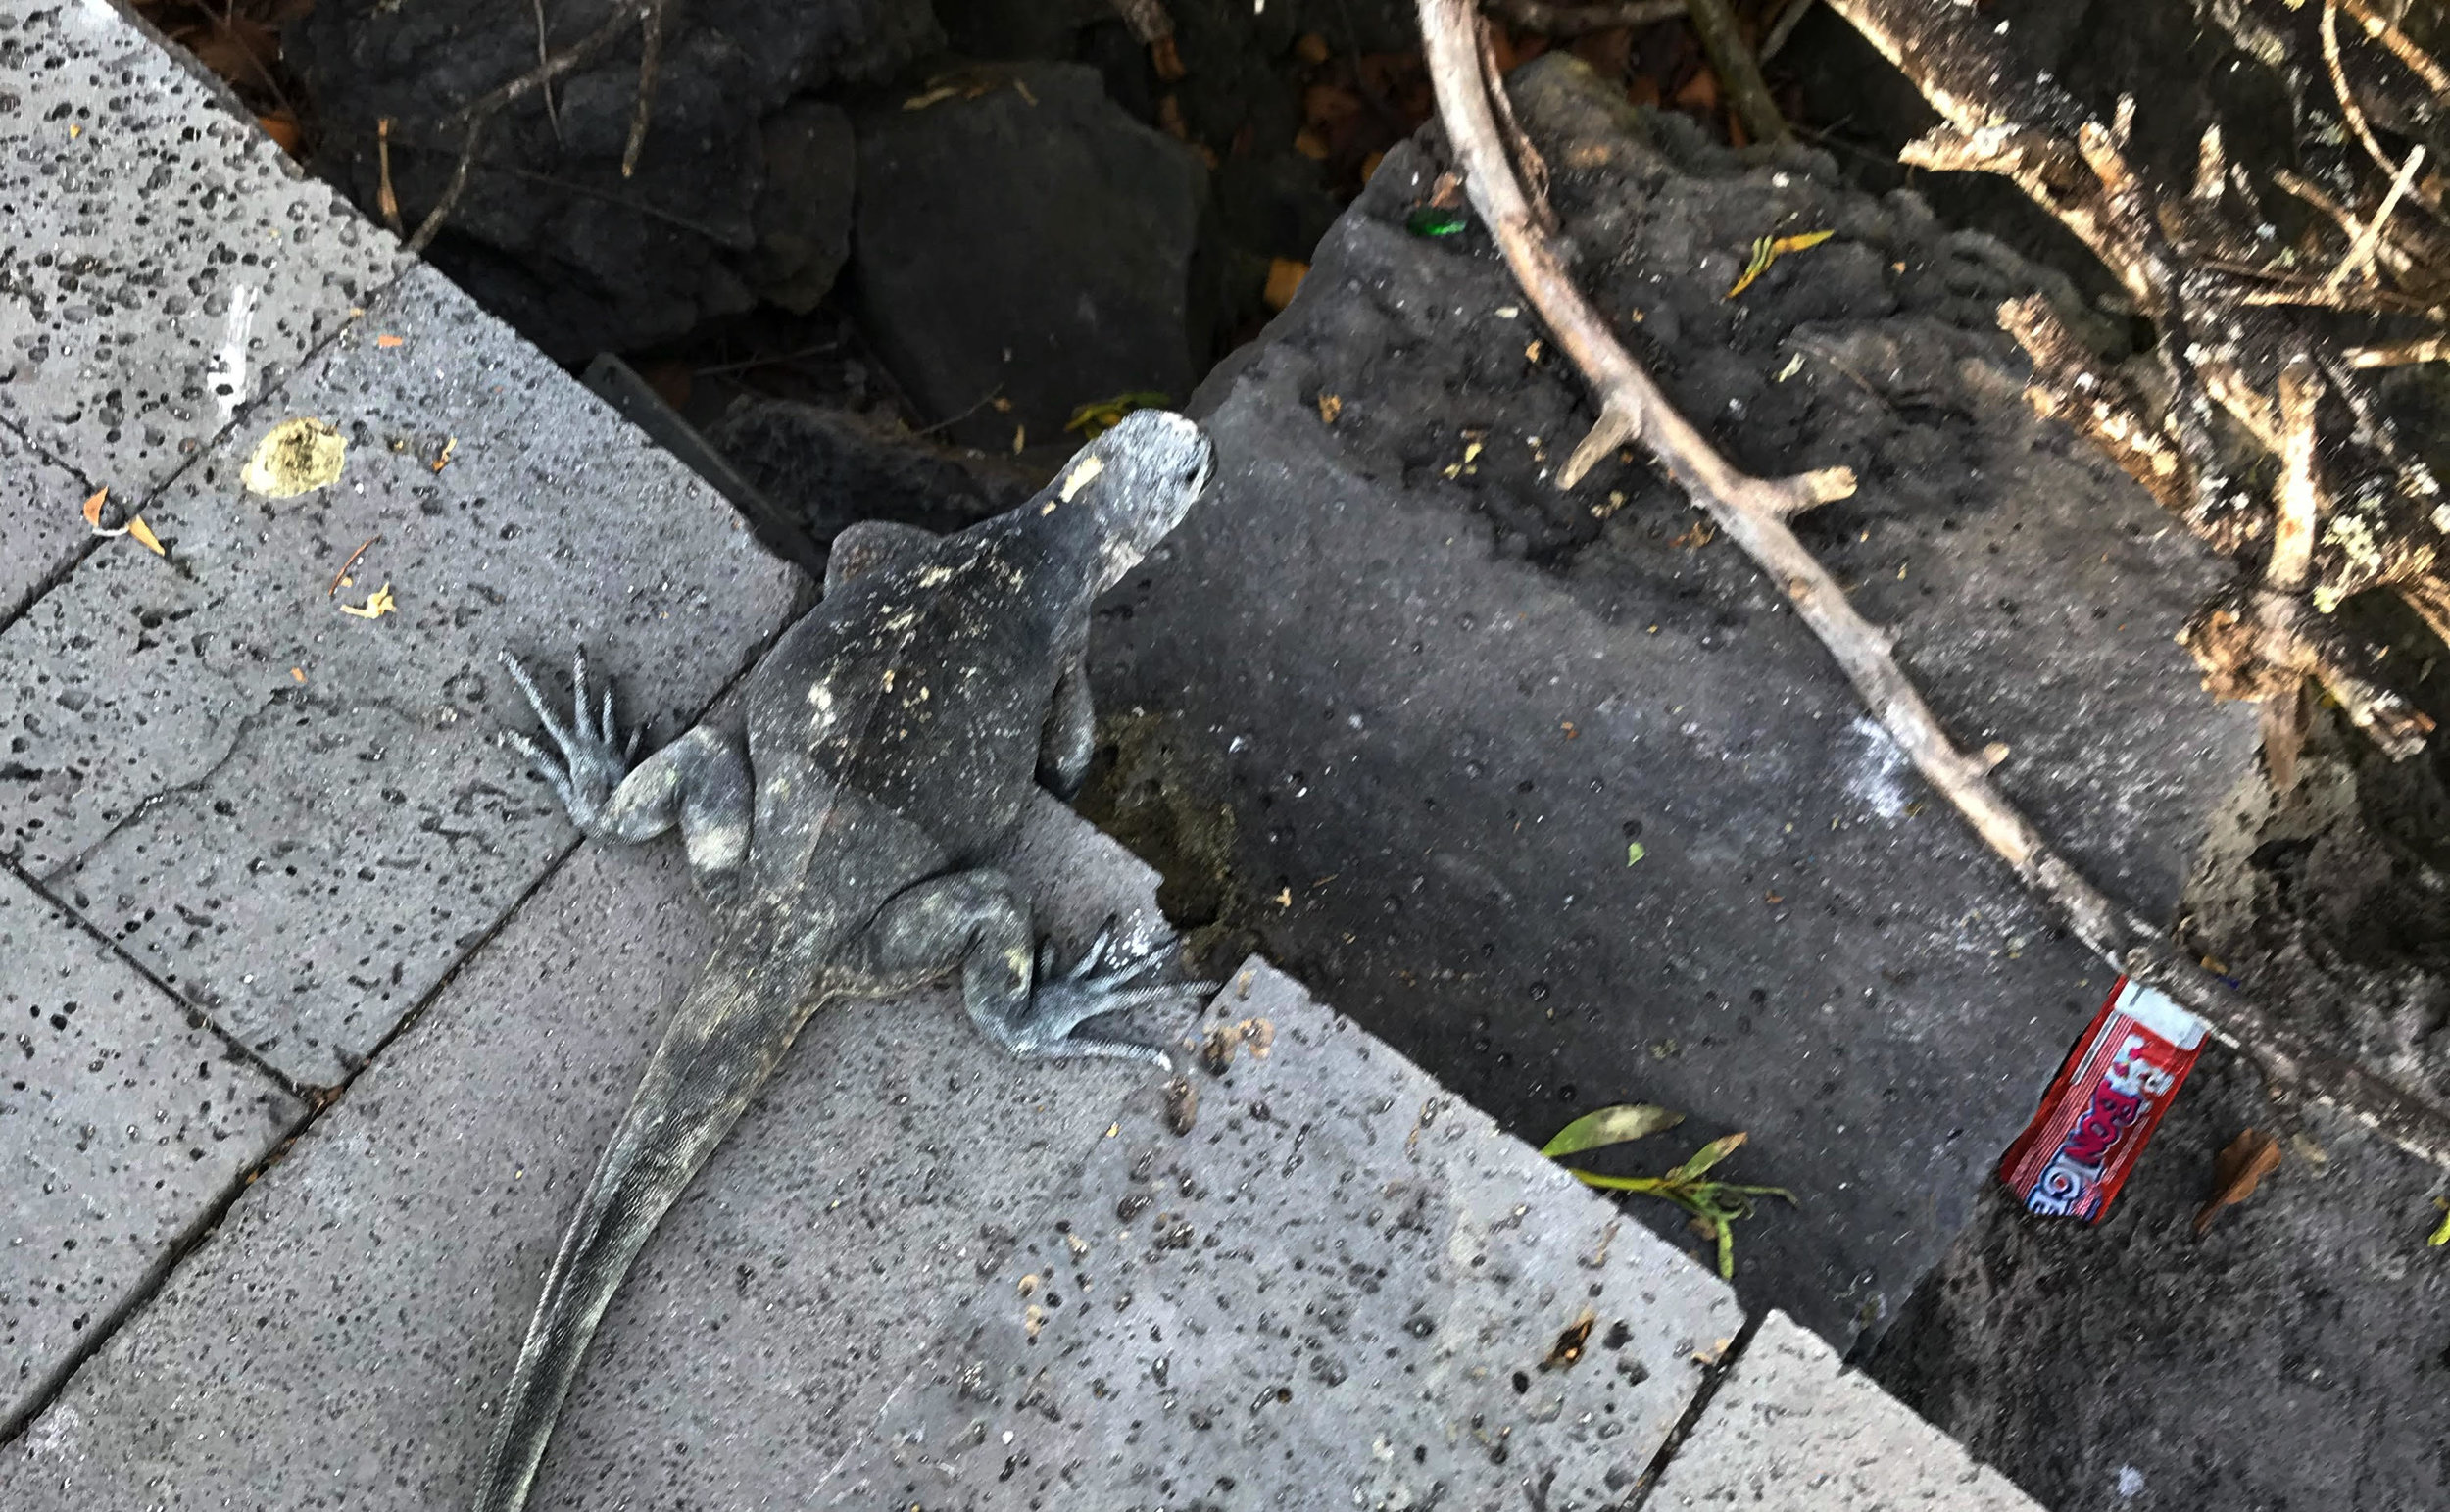 Trash in the Galápagos reveals the dark side of ecotourism